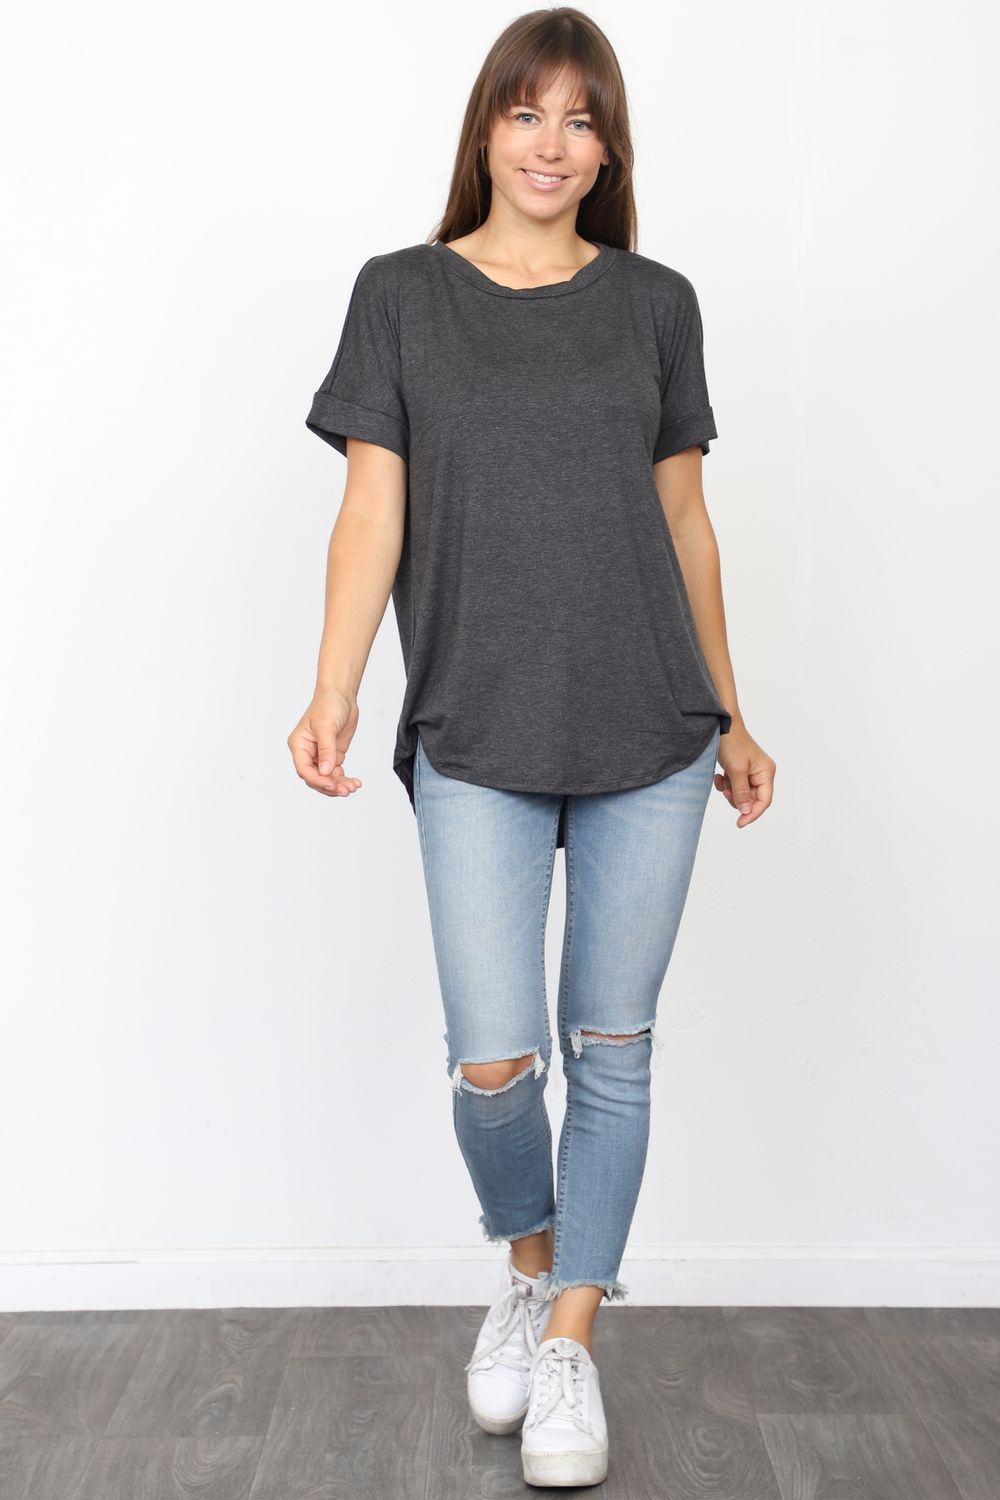 Solid Charcoal Round Neck Rolled Cuff Sleeve Top